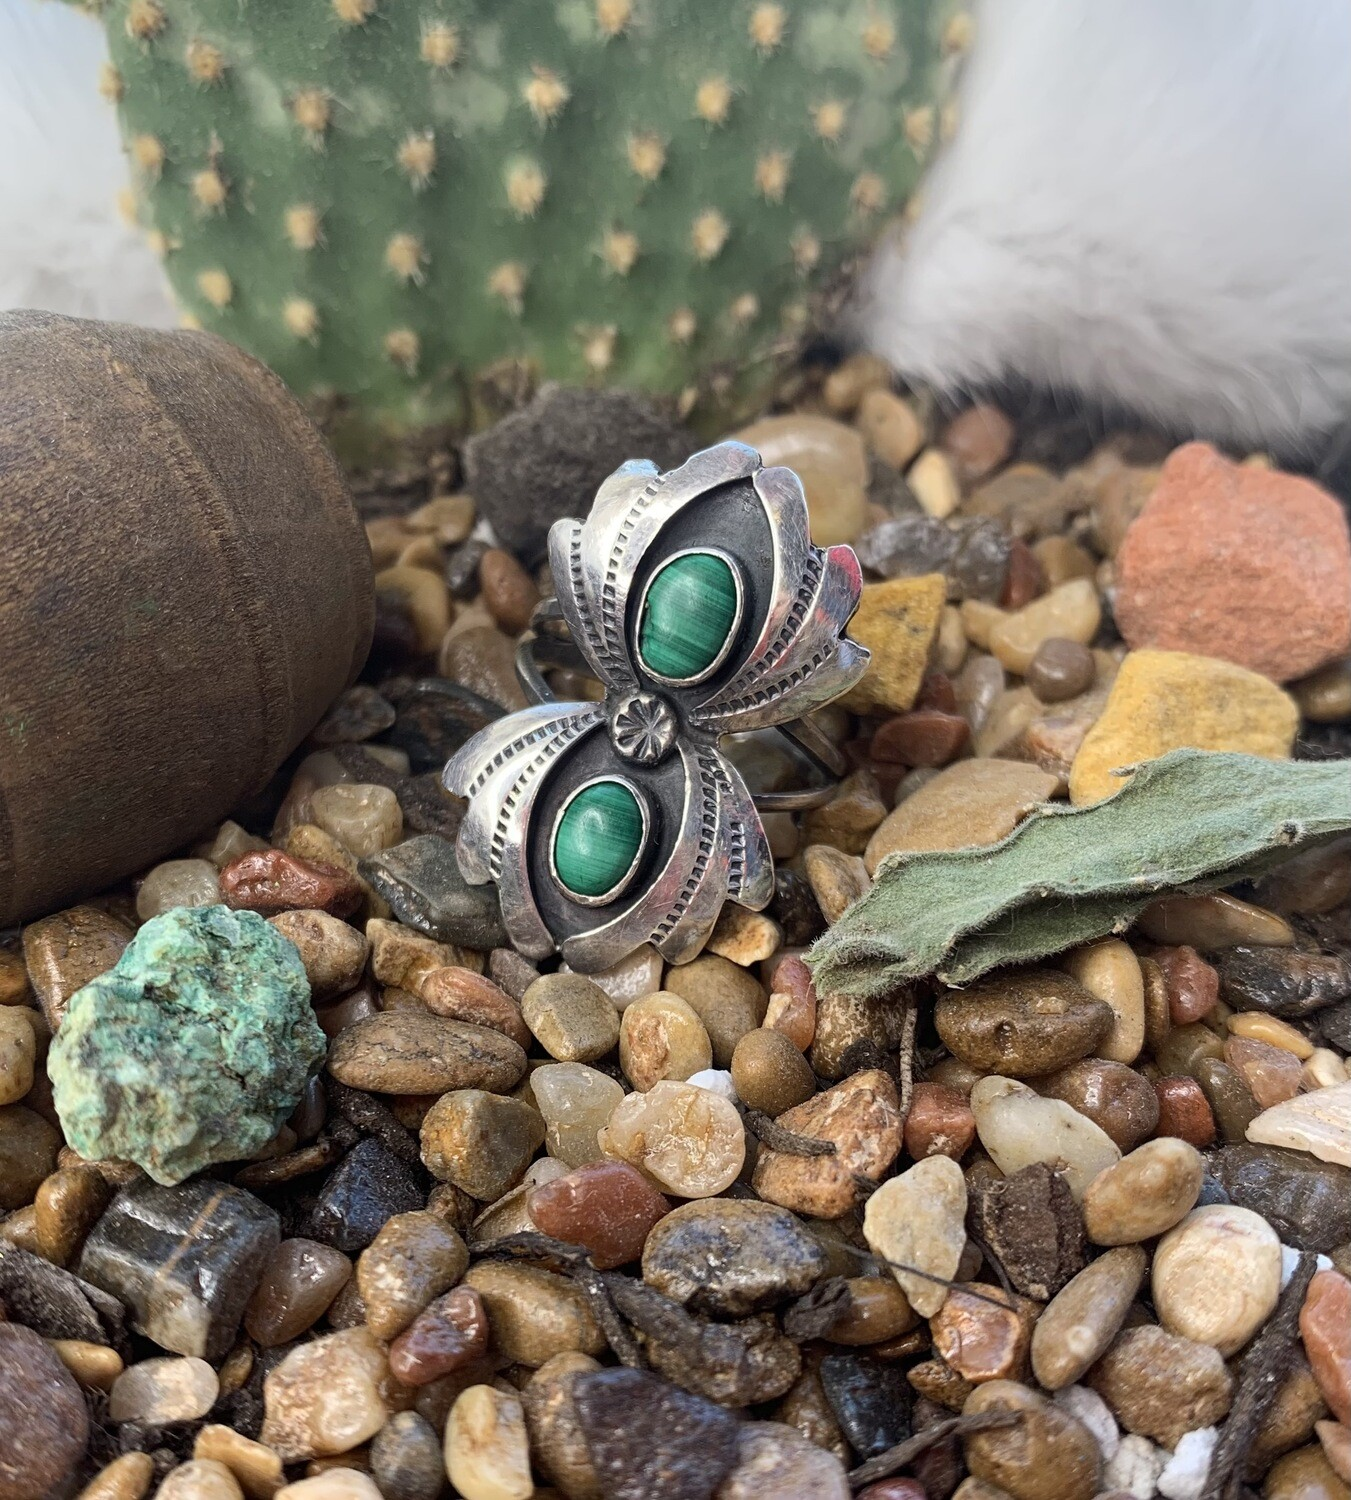 AAC - Dble Squash Blssm Turquoise & Sterling Ring